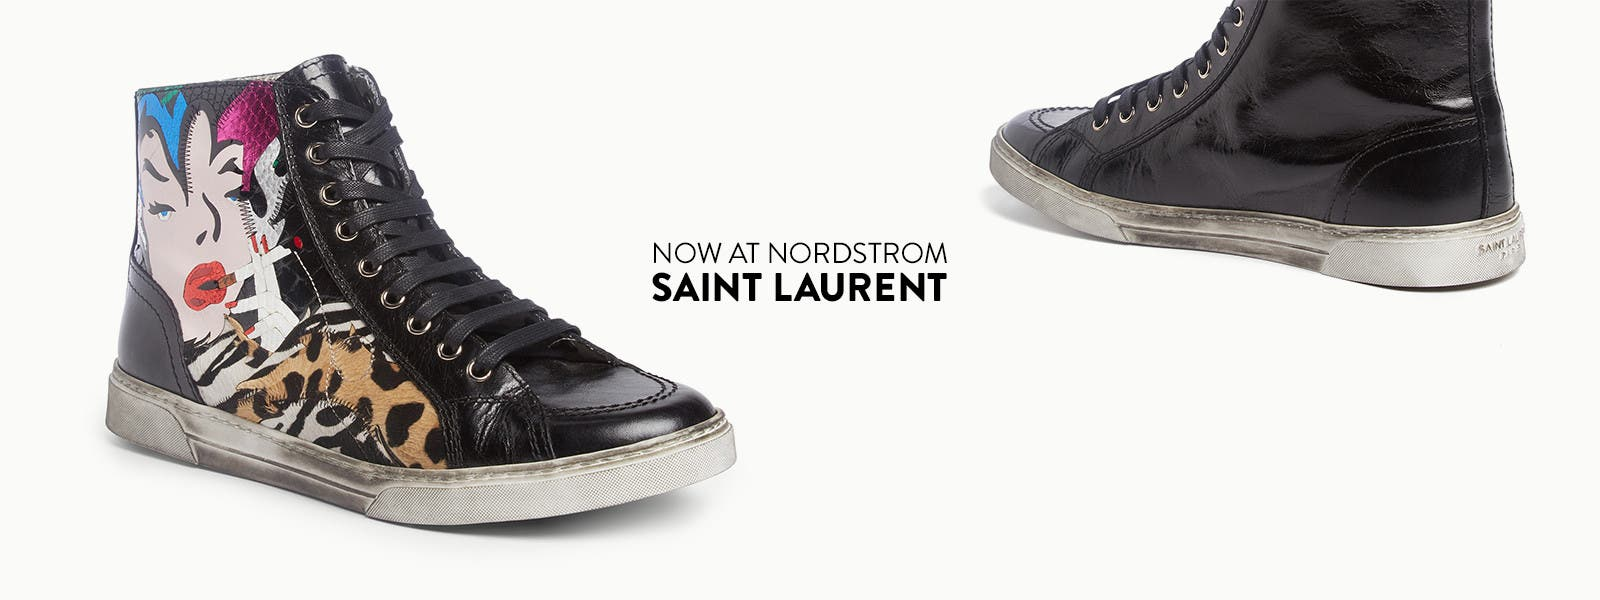 Now at Nordstrom, Saint Laurent for men.